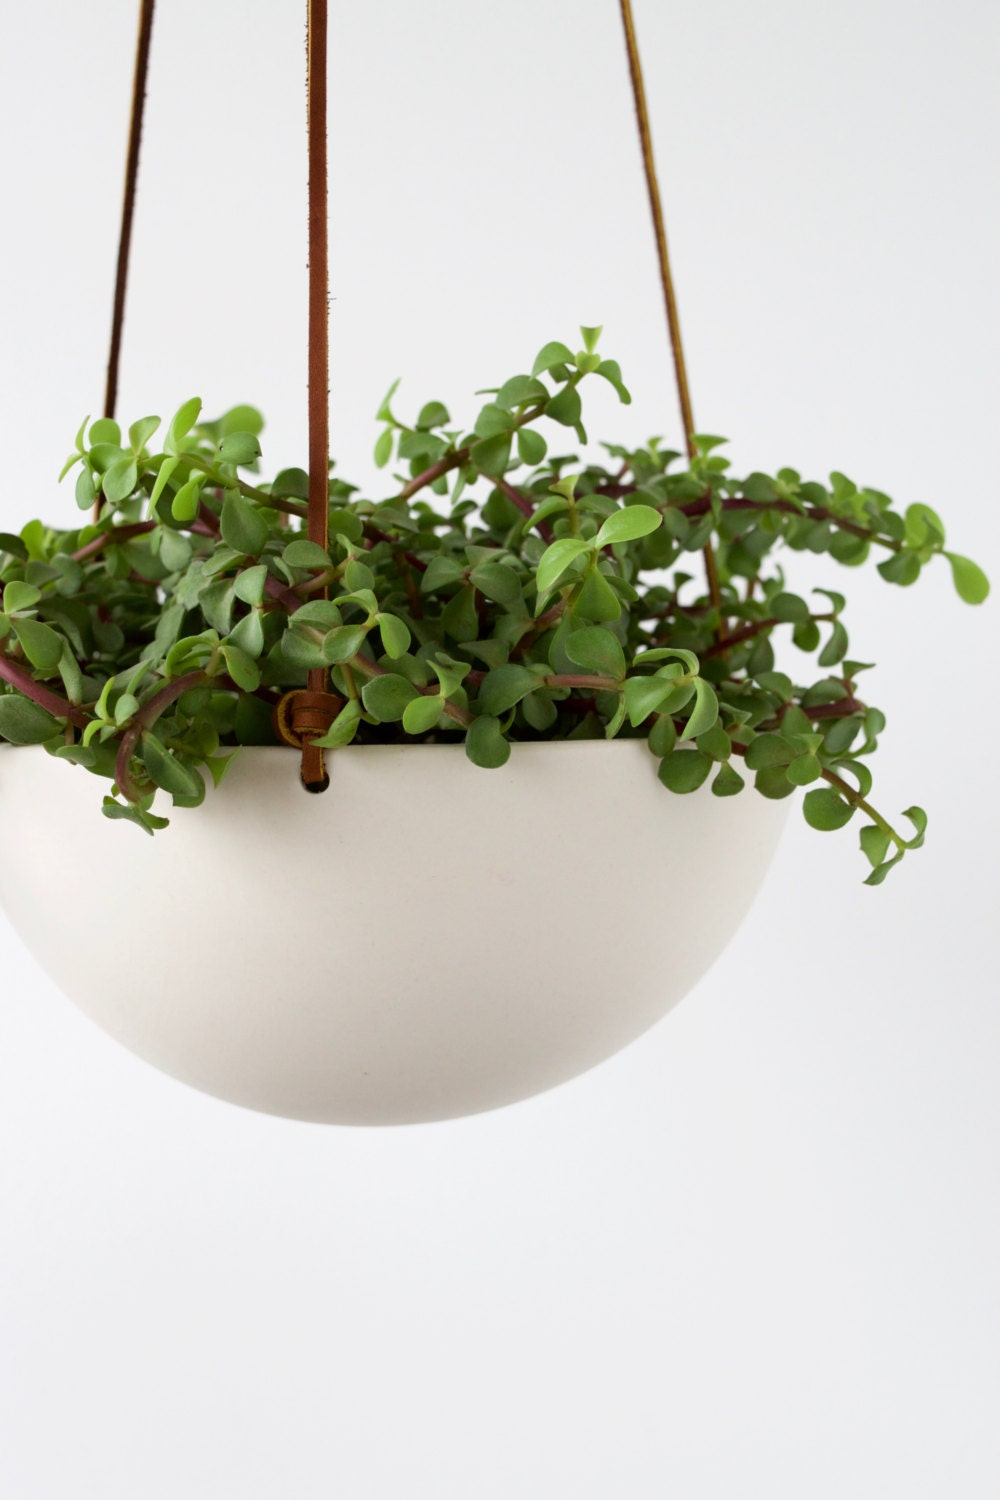 Hanging Ceramic Porcelain Planter Medium Size Geometric